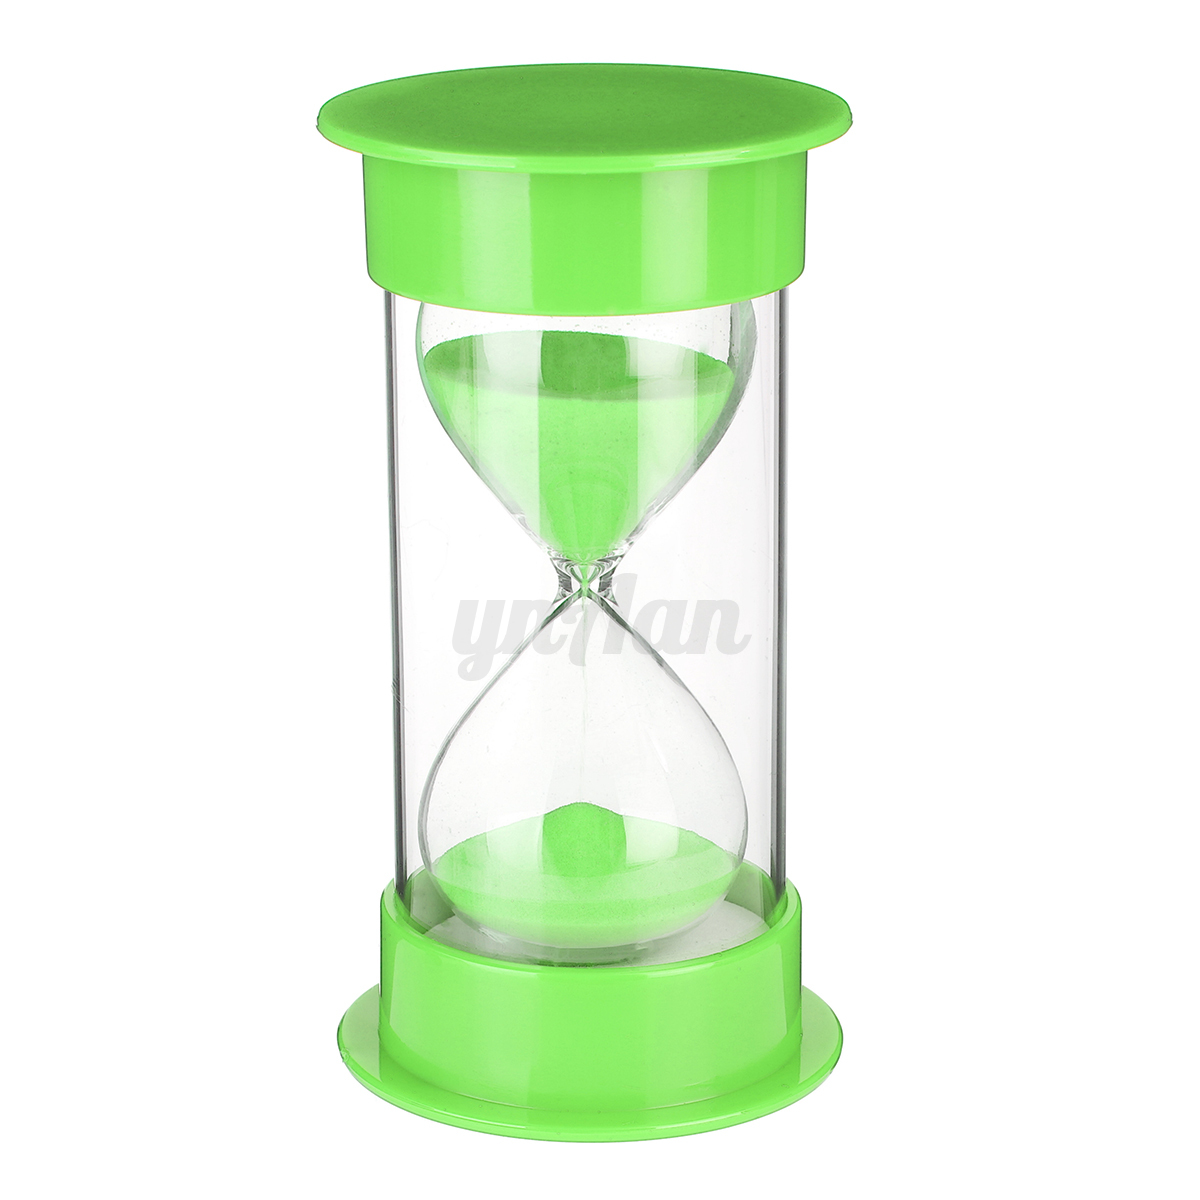 5 10 15 20 30 minuten sanduhr glas sand uhr eieruhr timer sen asd 12cm kind gift ebay. Black Bedroom Furniture Sets. Home Design Ideas